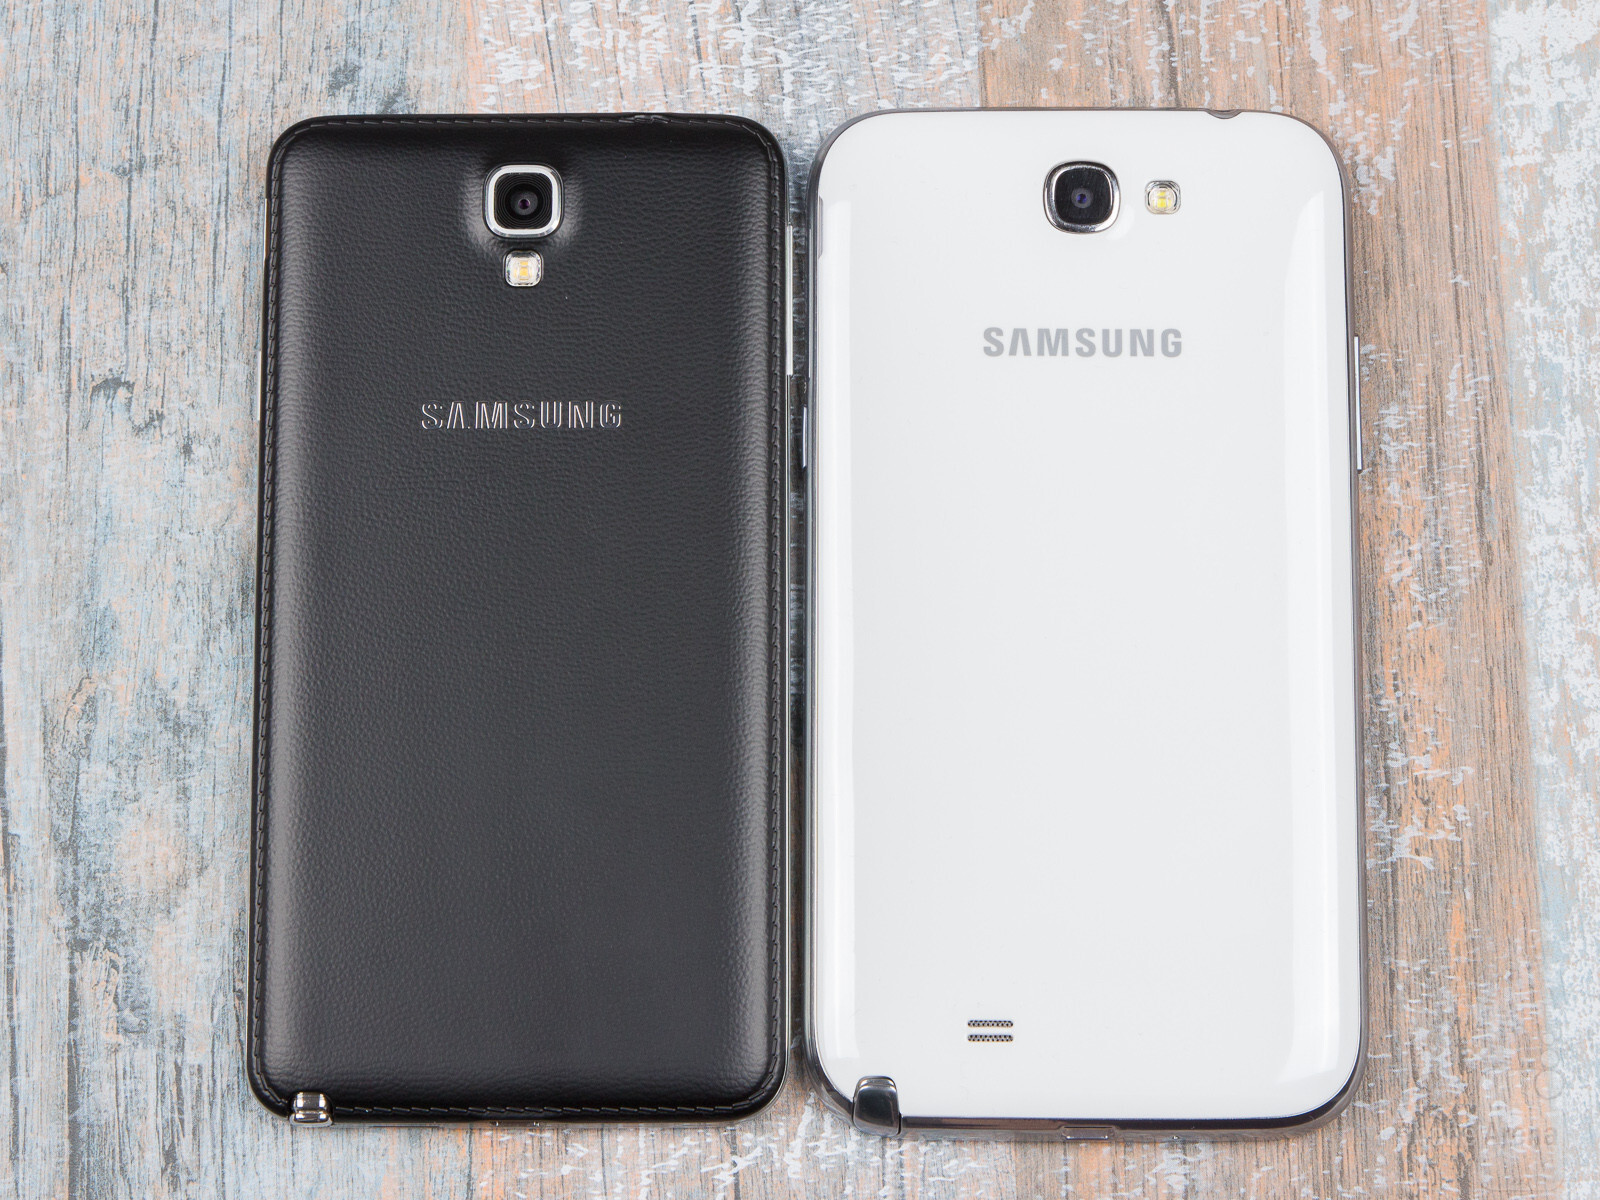 samsung galaxy note 3 neo vs note ii first look. Black Bedroom Furniture Sets. Home Design Ideas